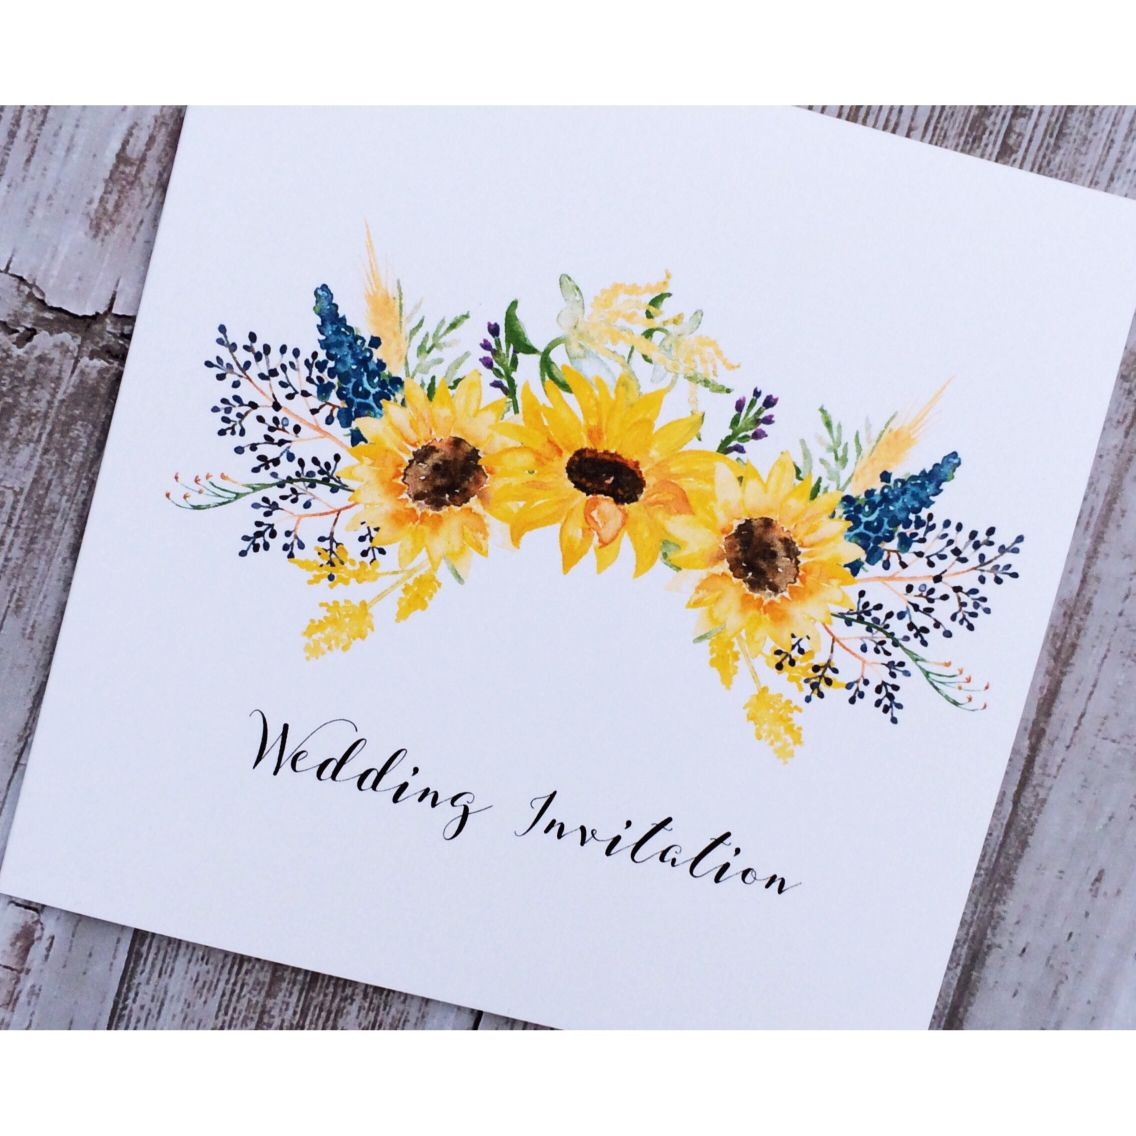 Beautiful sunflower wedding invitation. Perfect for a